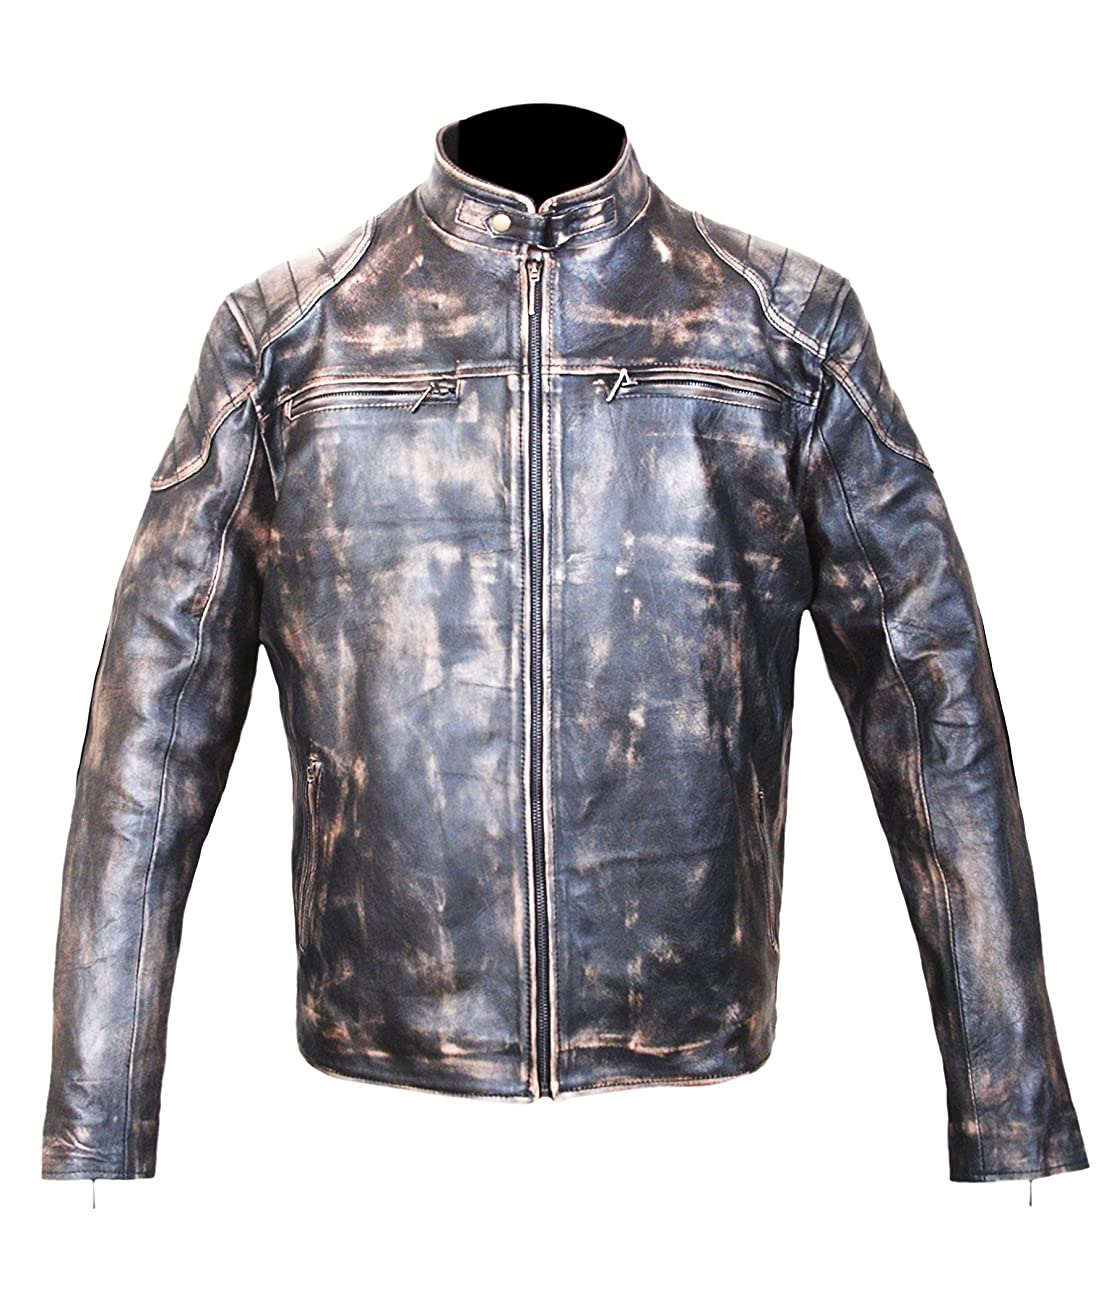 Antique Black Men's Vintage Distressed Retro Motorcycle Biker Leather jacket - TOP SELLER 0